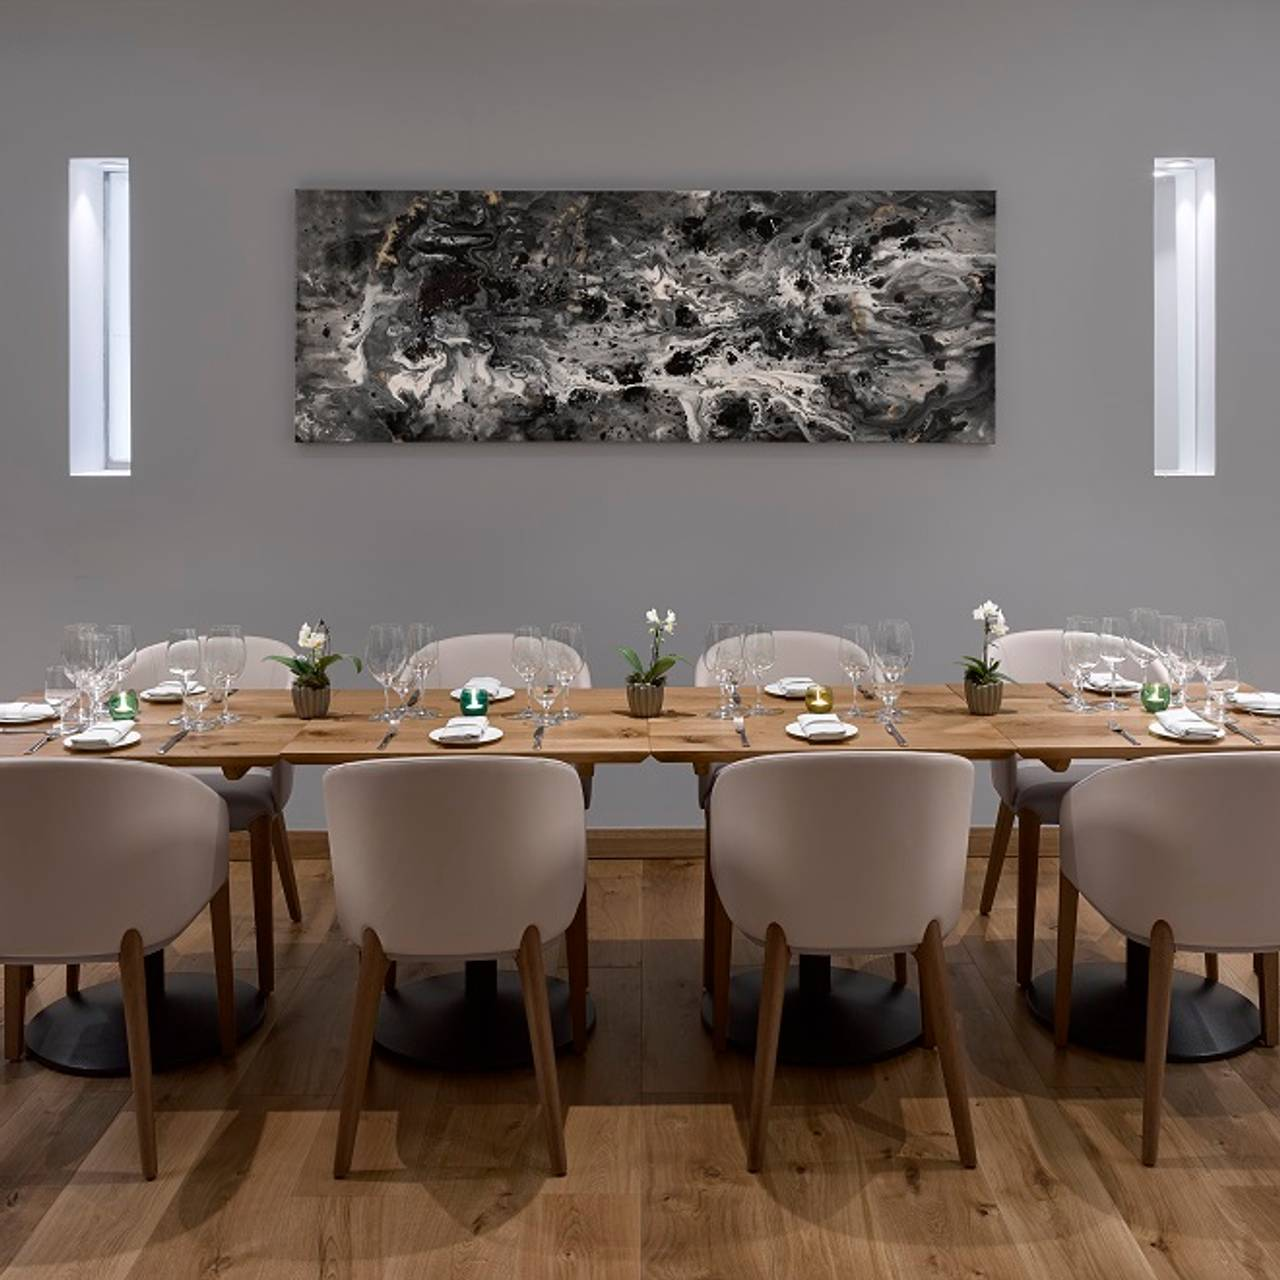 Theo Randall at the InterContinental Restaurant - London,   OpenTable